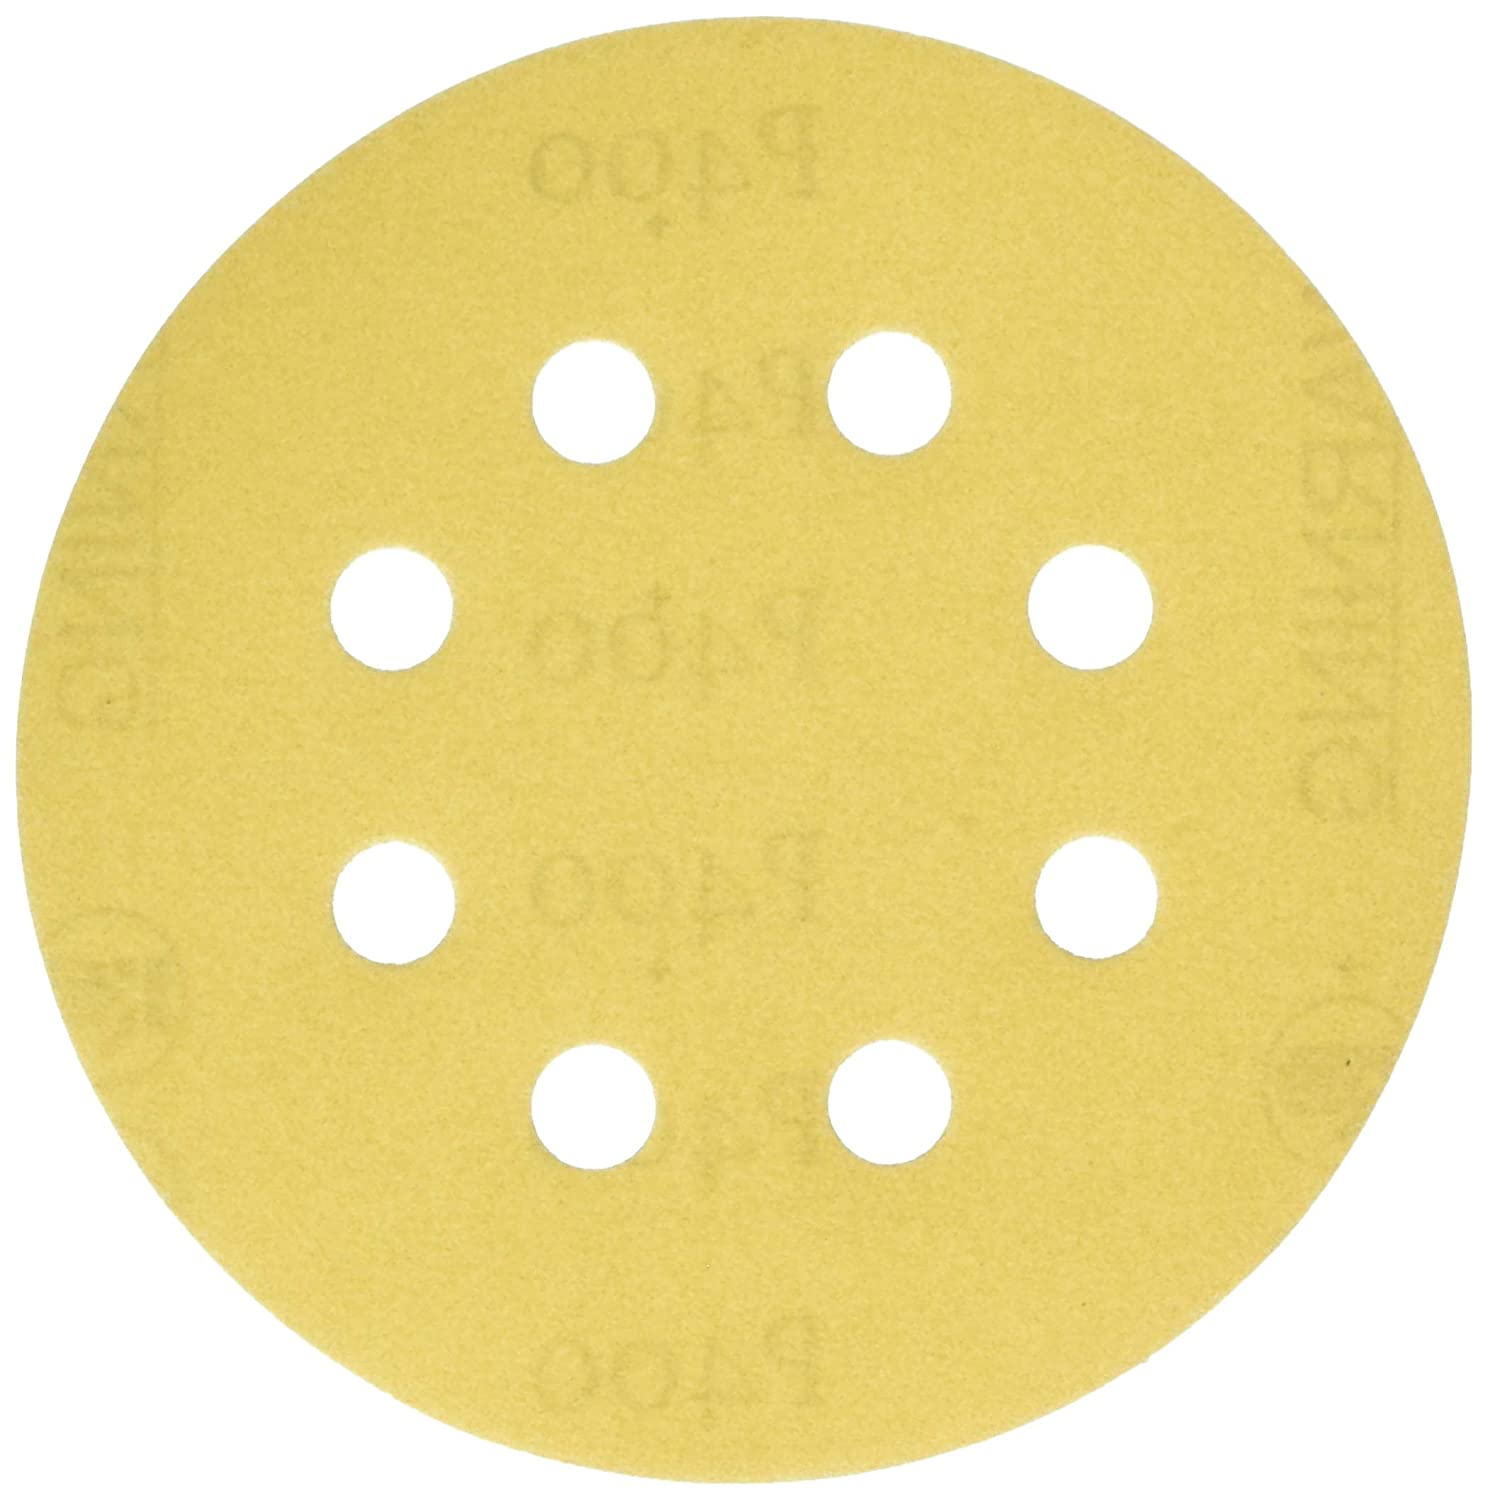 Gold 50 Pack Karebac K3-585-600 Stearated Aluminum Oxide600 Grit Dustless Hook /& Loop Sanding Discs with 5x8 Hole